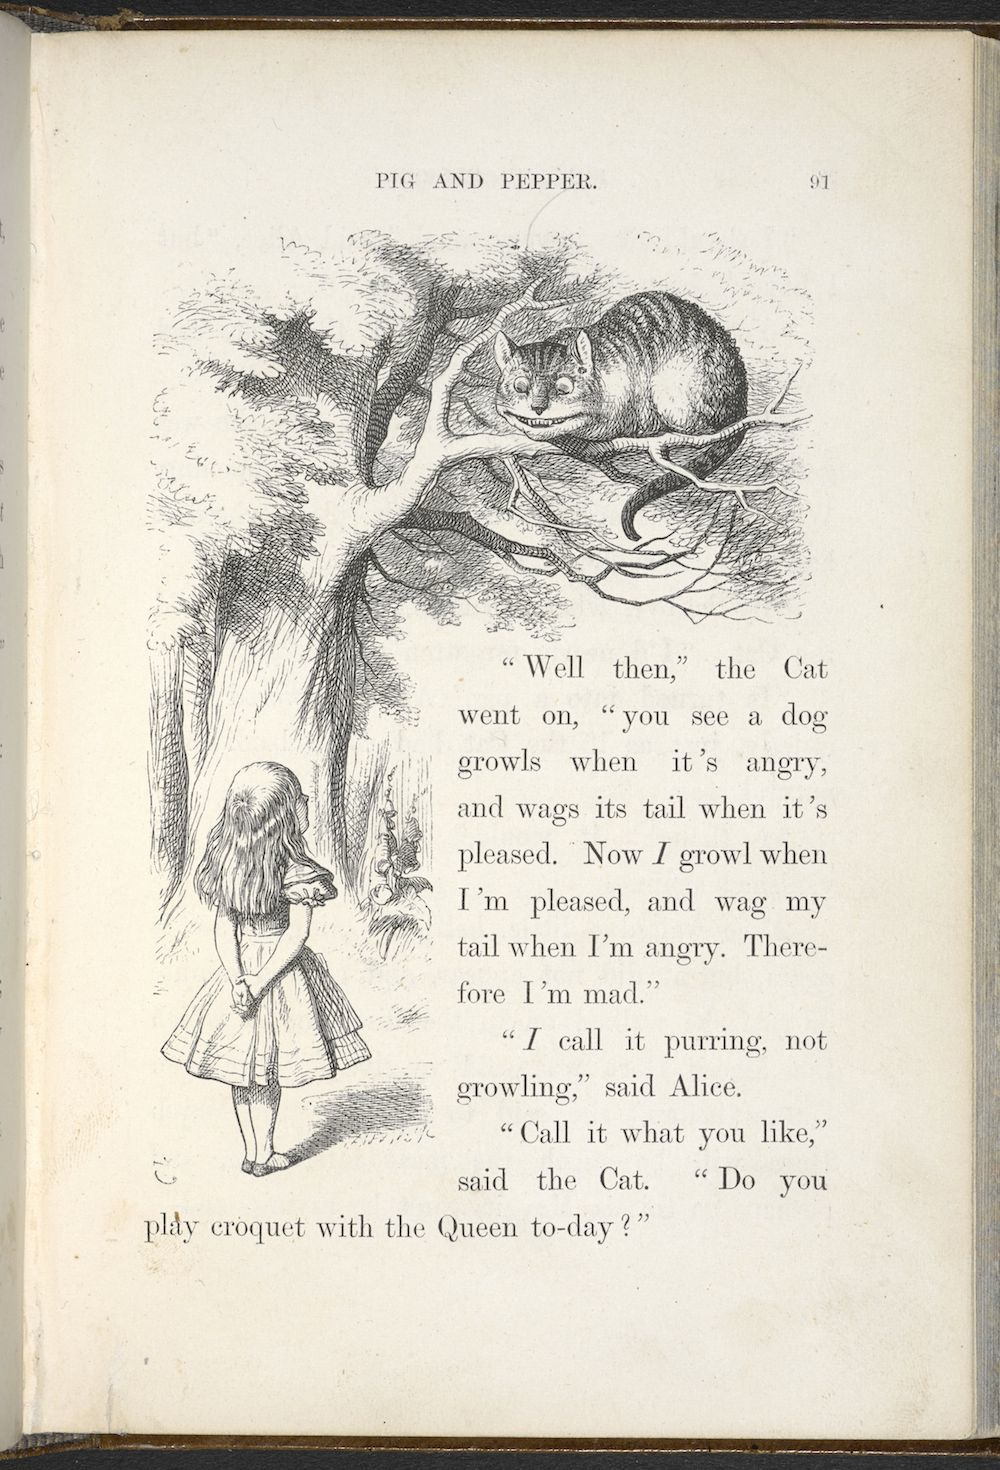 alice in wonderland by lewis carroll The imaginative english author lewis carroll wrote alice's adventures in  wonderland learn more about his influences and impact on.